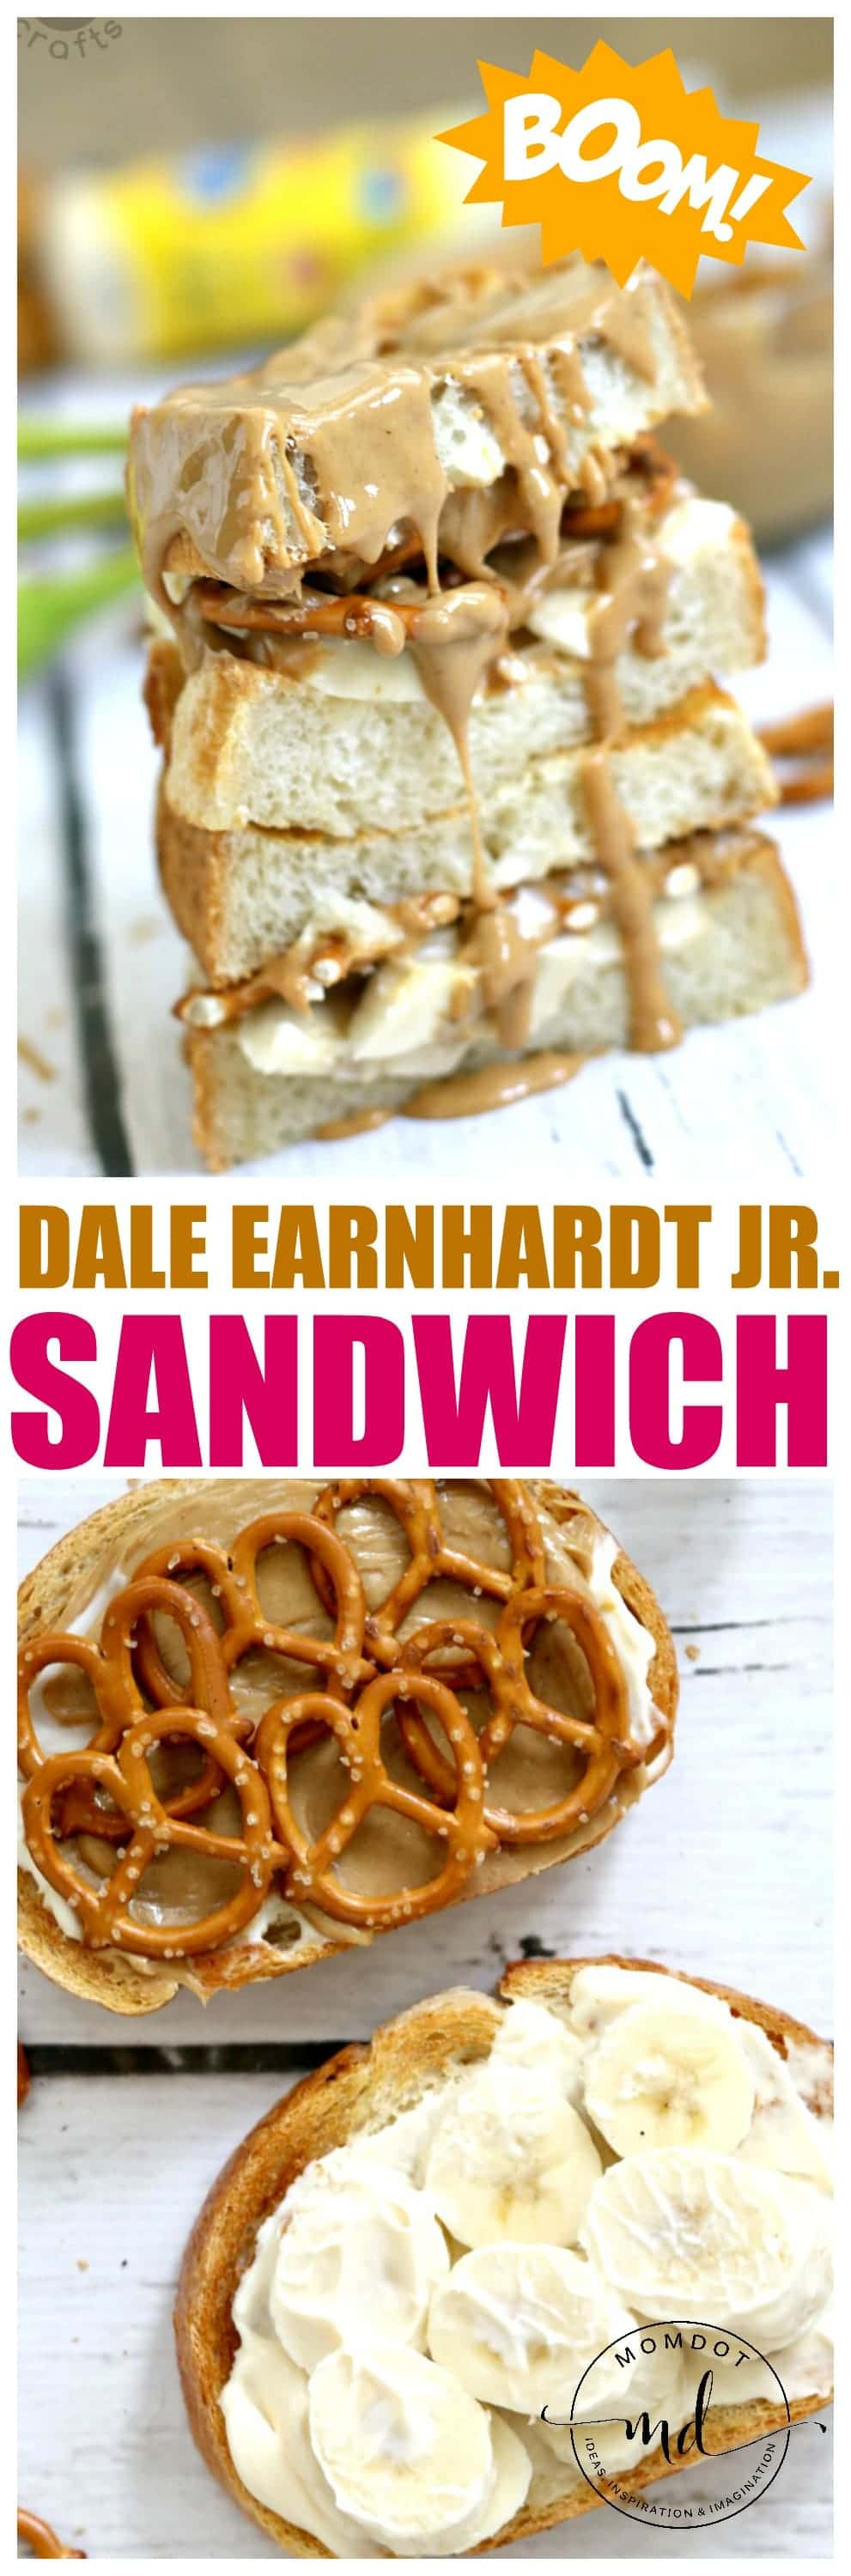 Dale Earnhardt Jr Sandwich, a peanut butter, banana and pretzel masterpiece that will up your lunch game